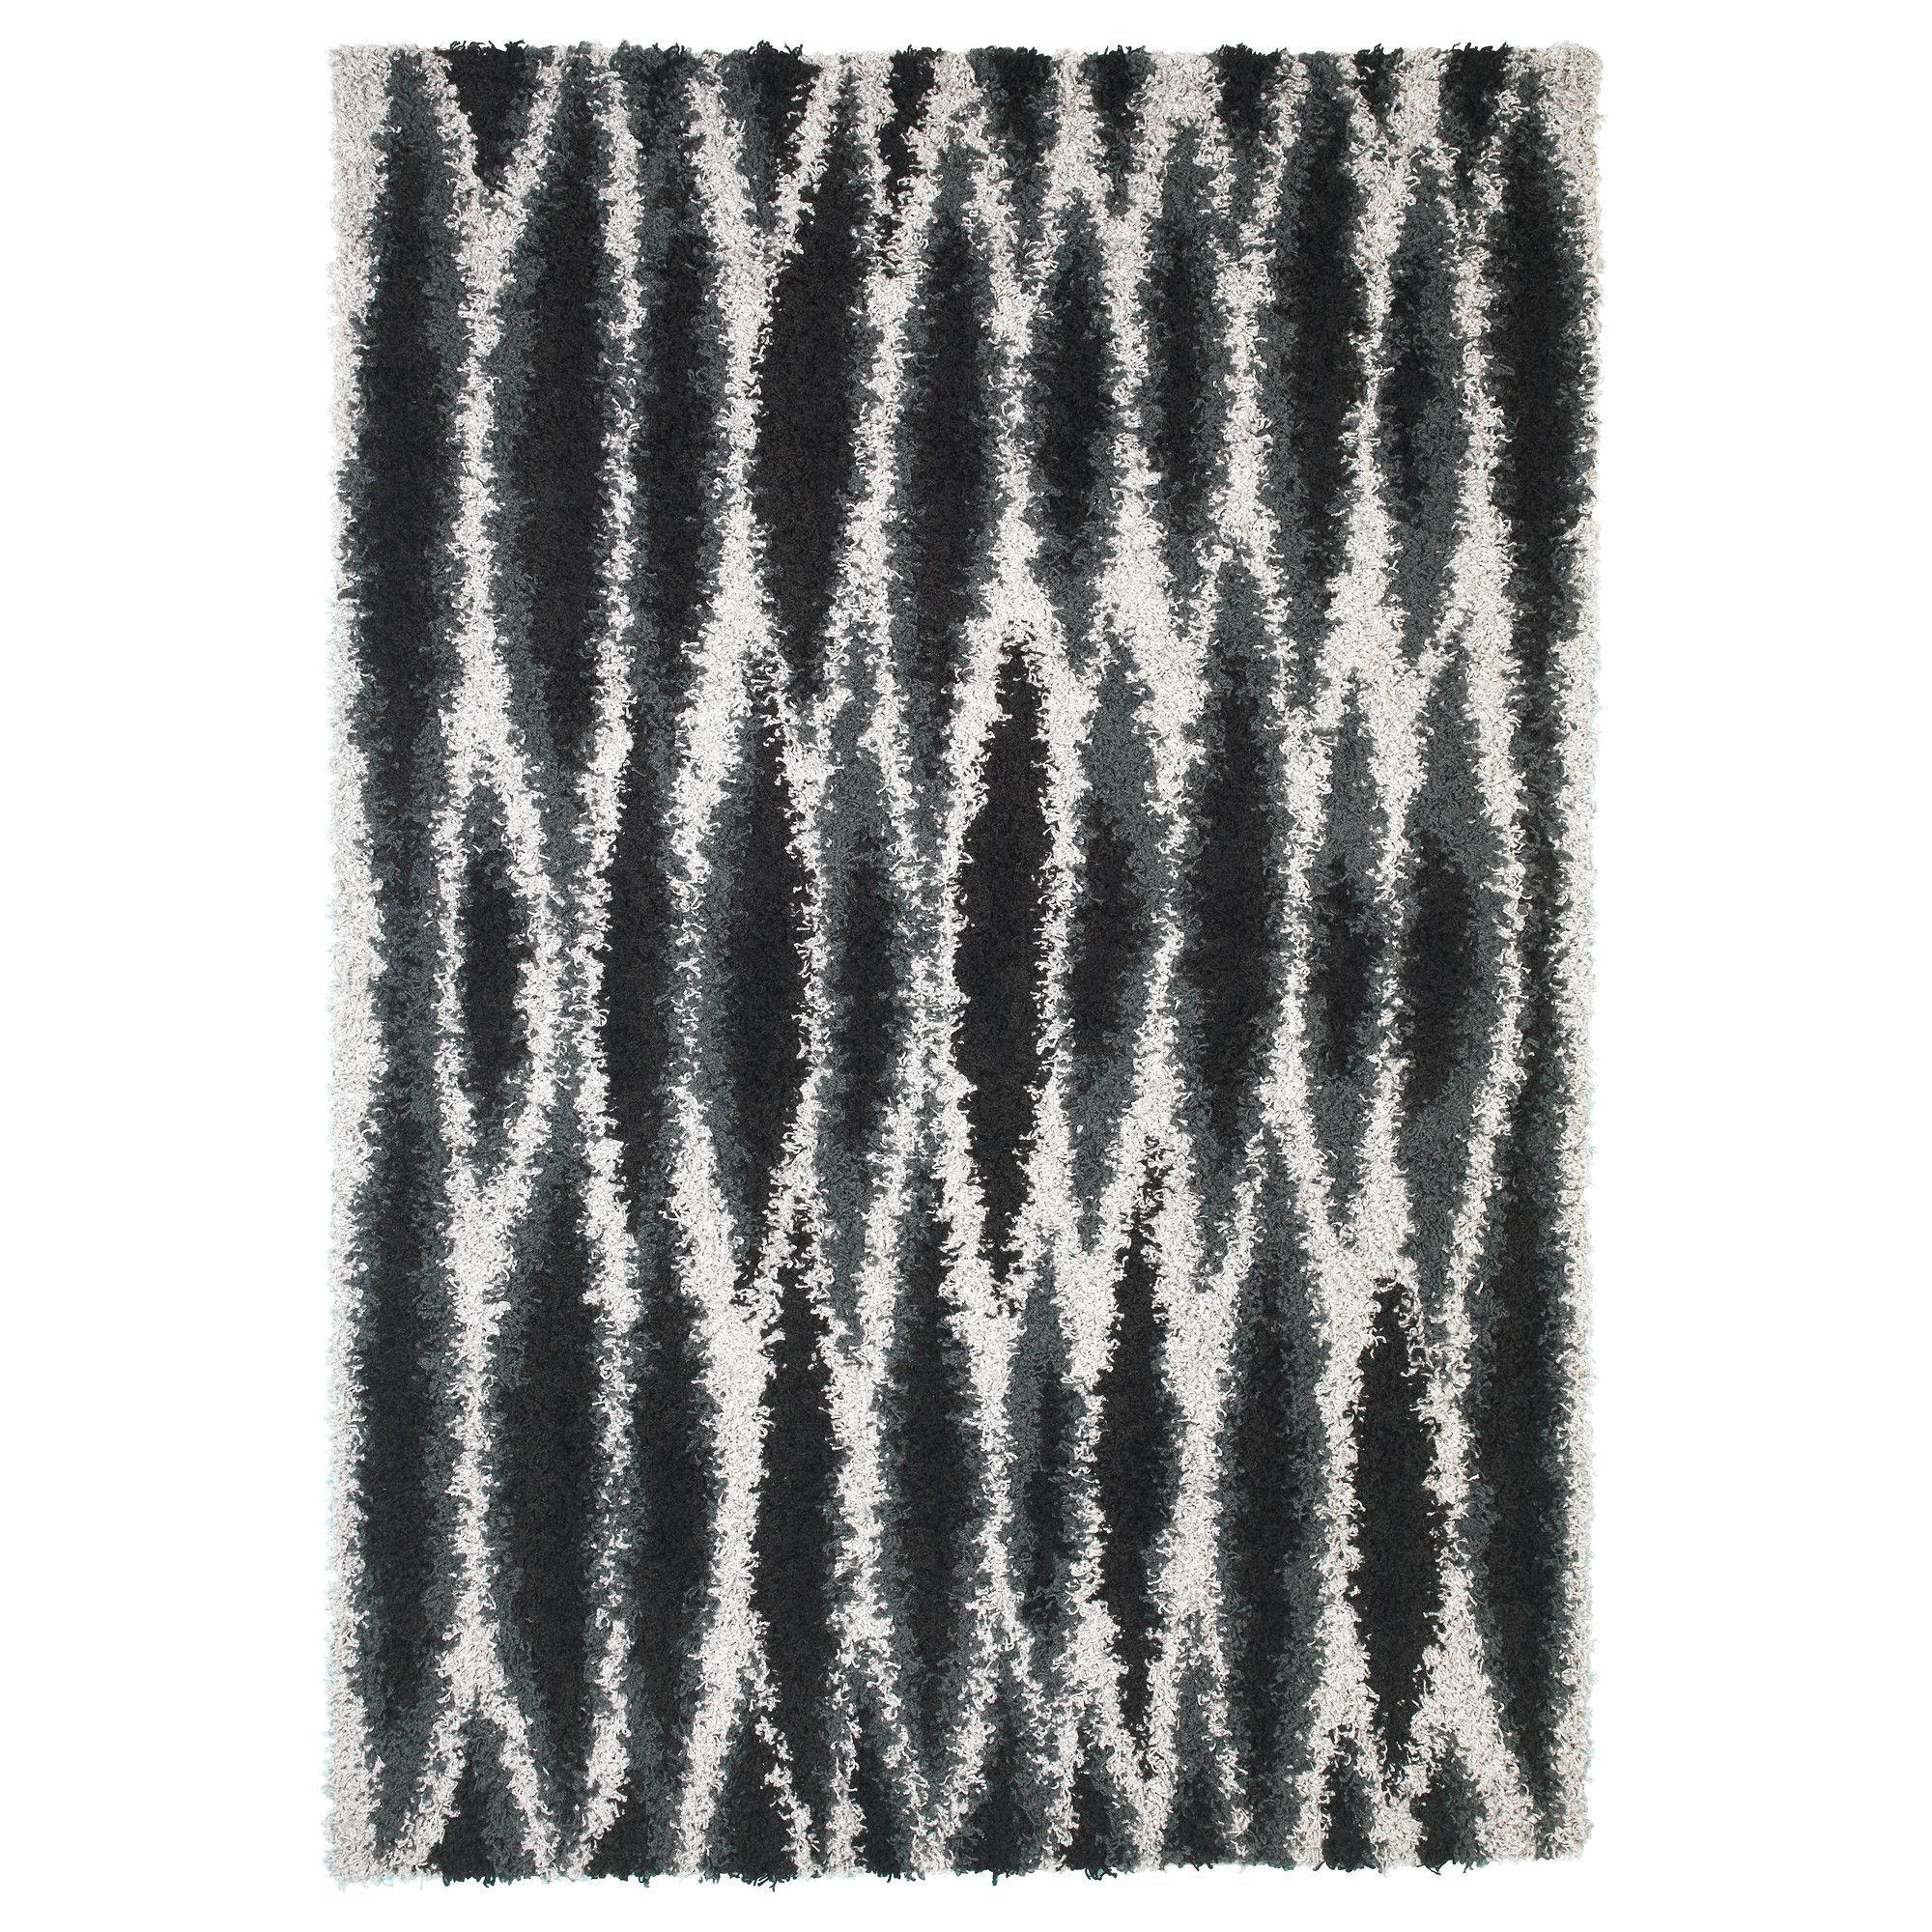 Tapis Rond Pas Cher Ikea Skoven Rug High Pile Gray Black Kitchens Pinterest Tapis